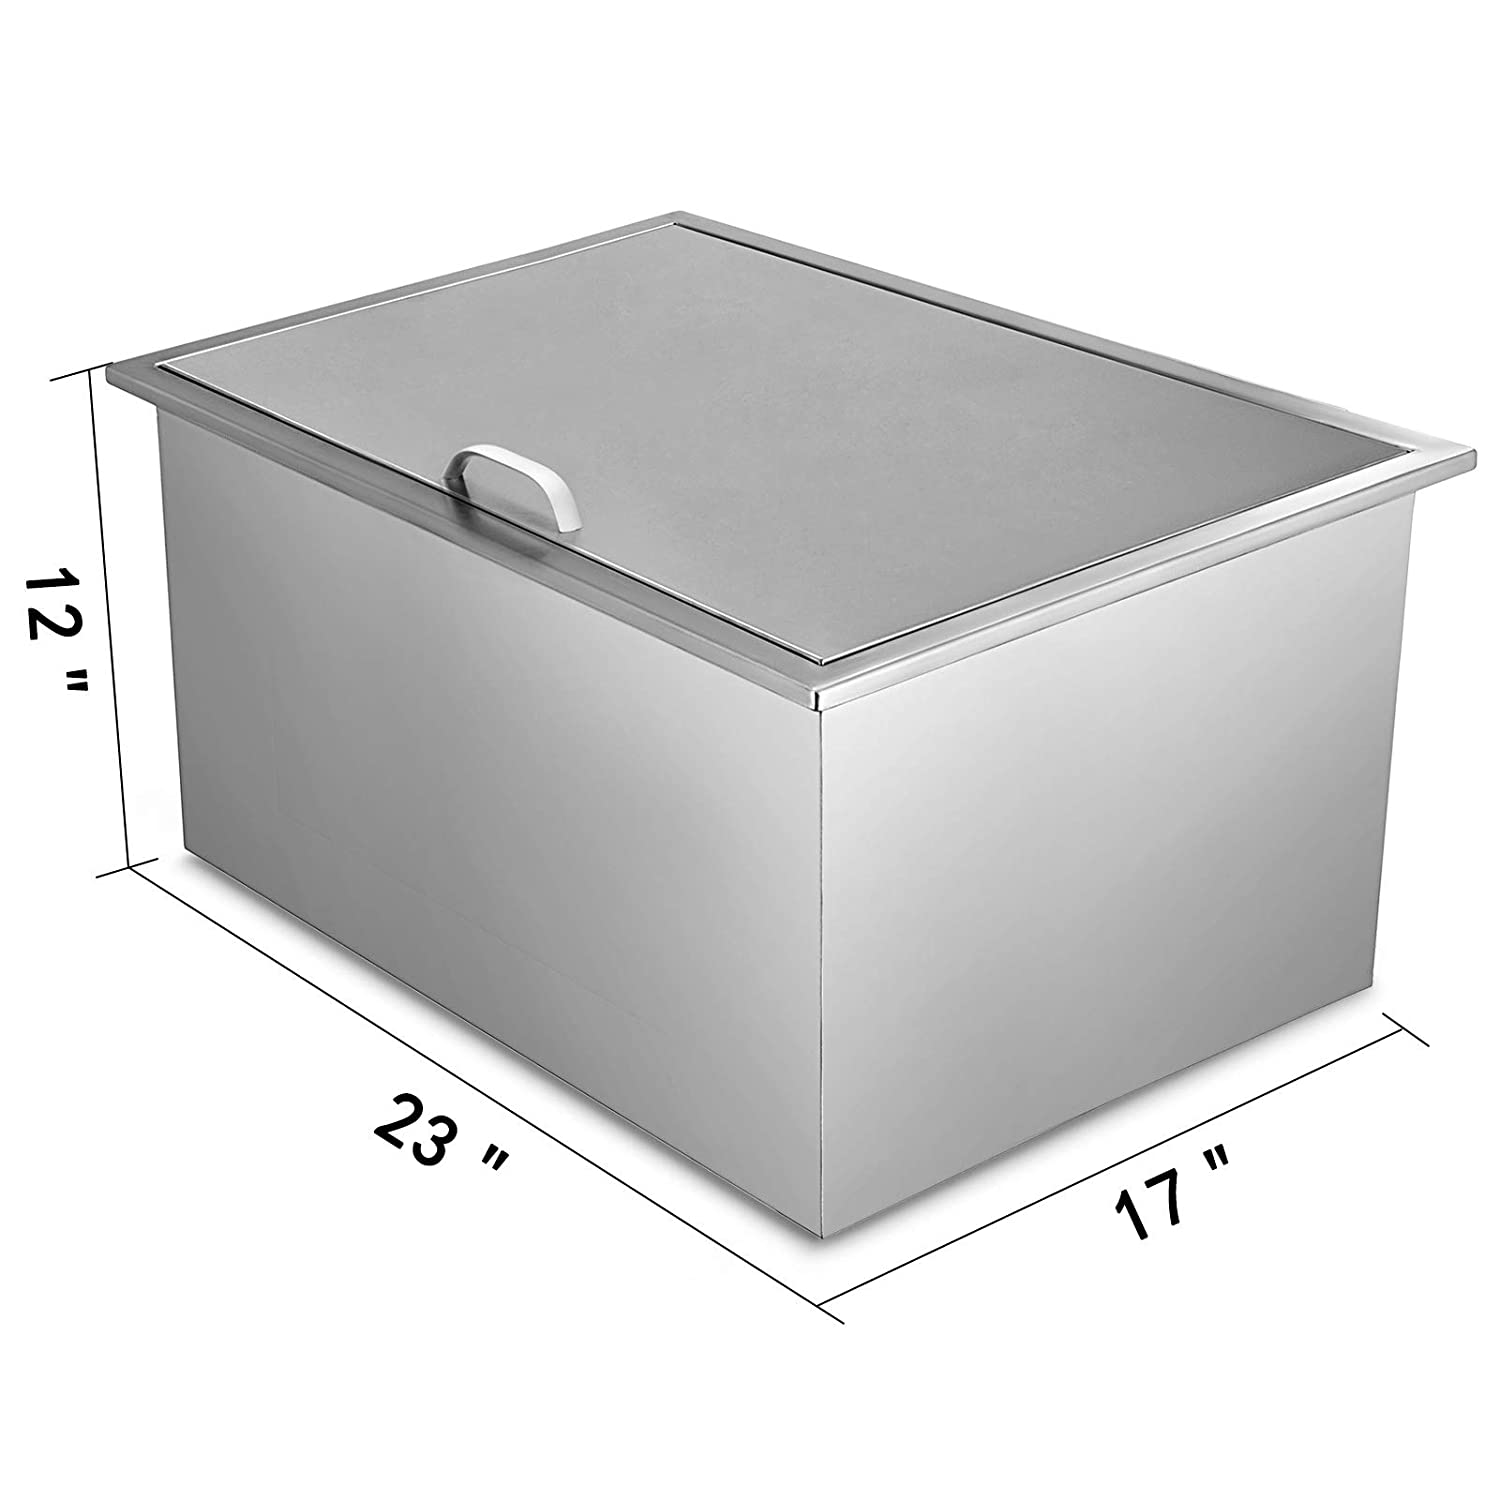 KITGARN Drop-in Ice Chest with Sliding Cover Stainless Steel Single Ice Chest Cooler Insulated Wall Wine Cooler Drop in Cooler 20 x 14 x 12 for Wine Beer Juice 20 x 14 x 12